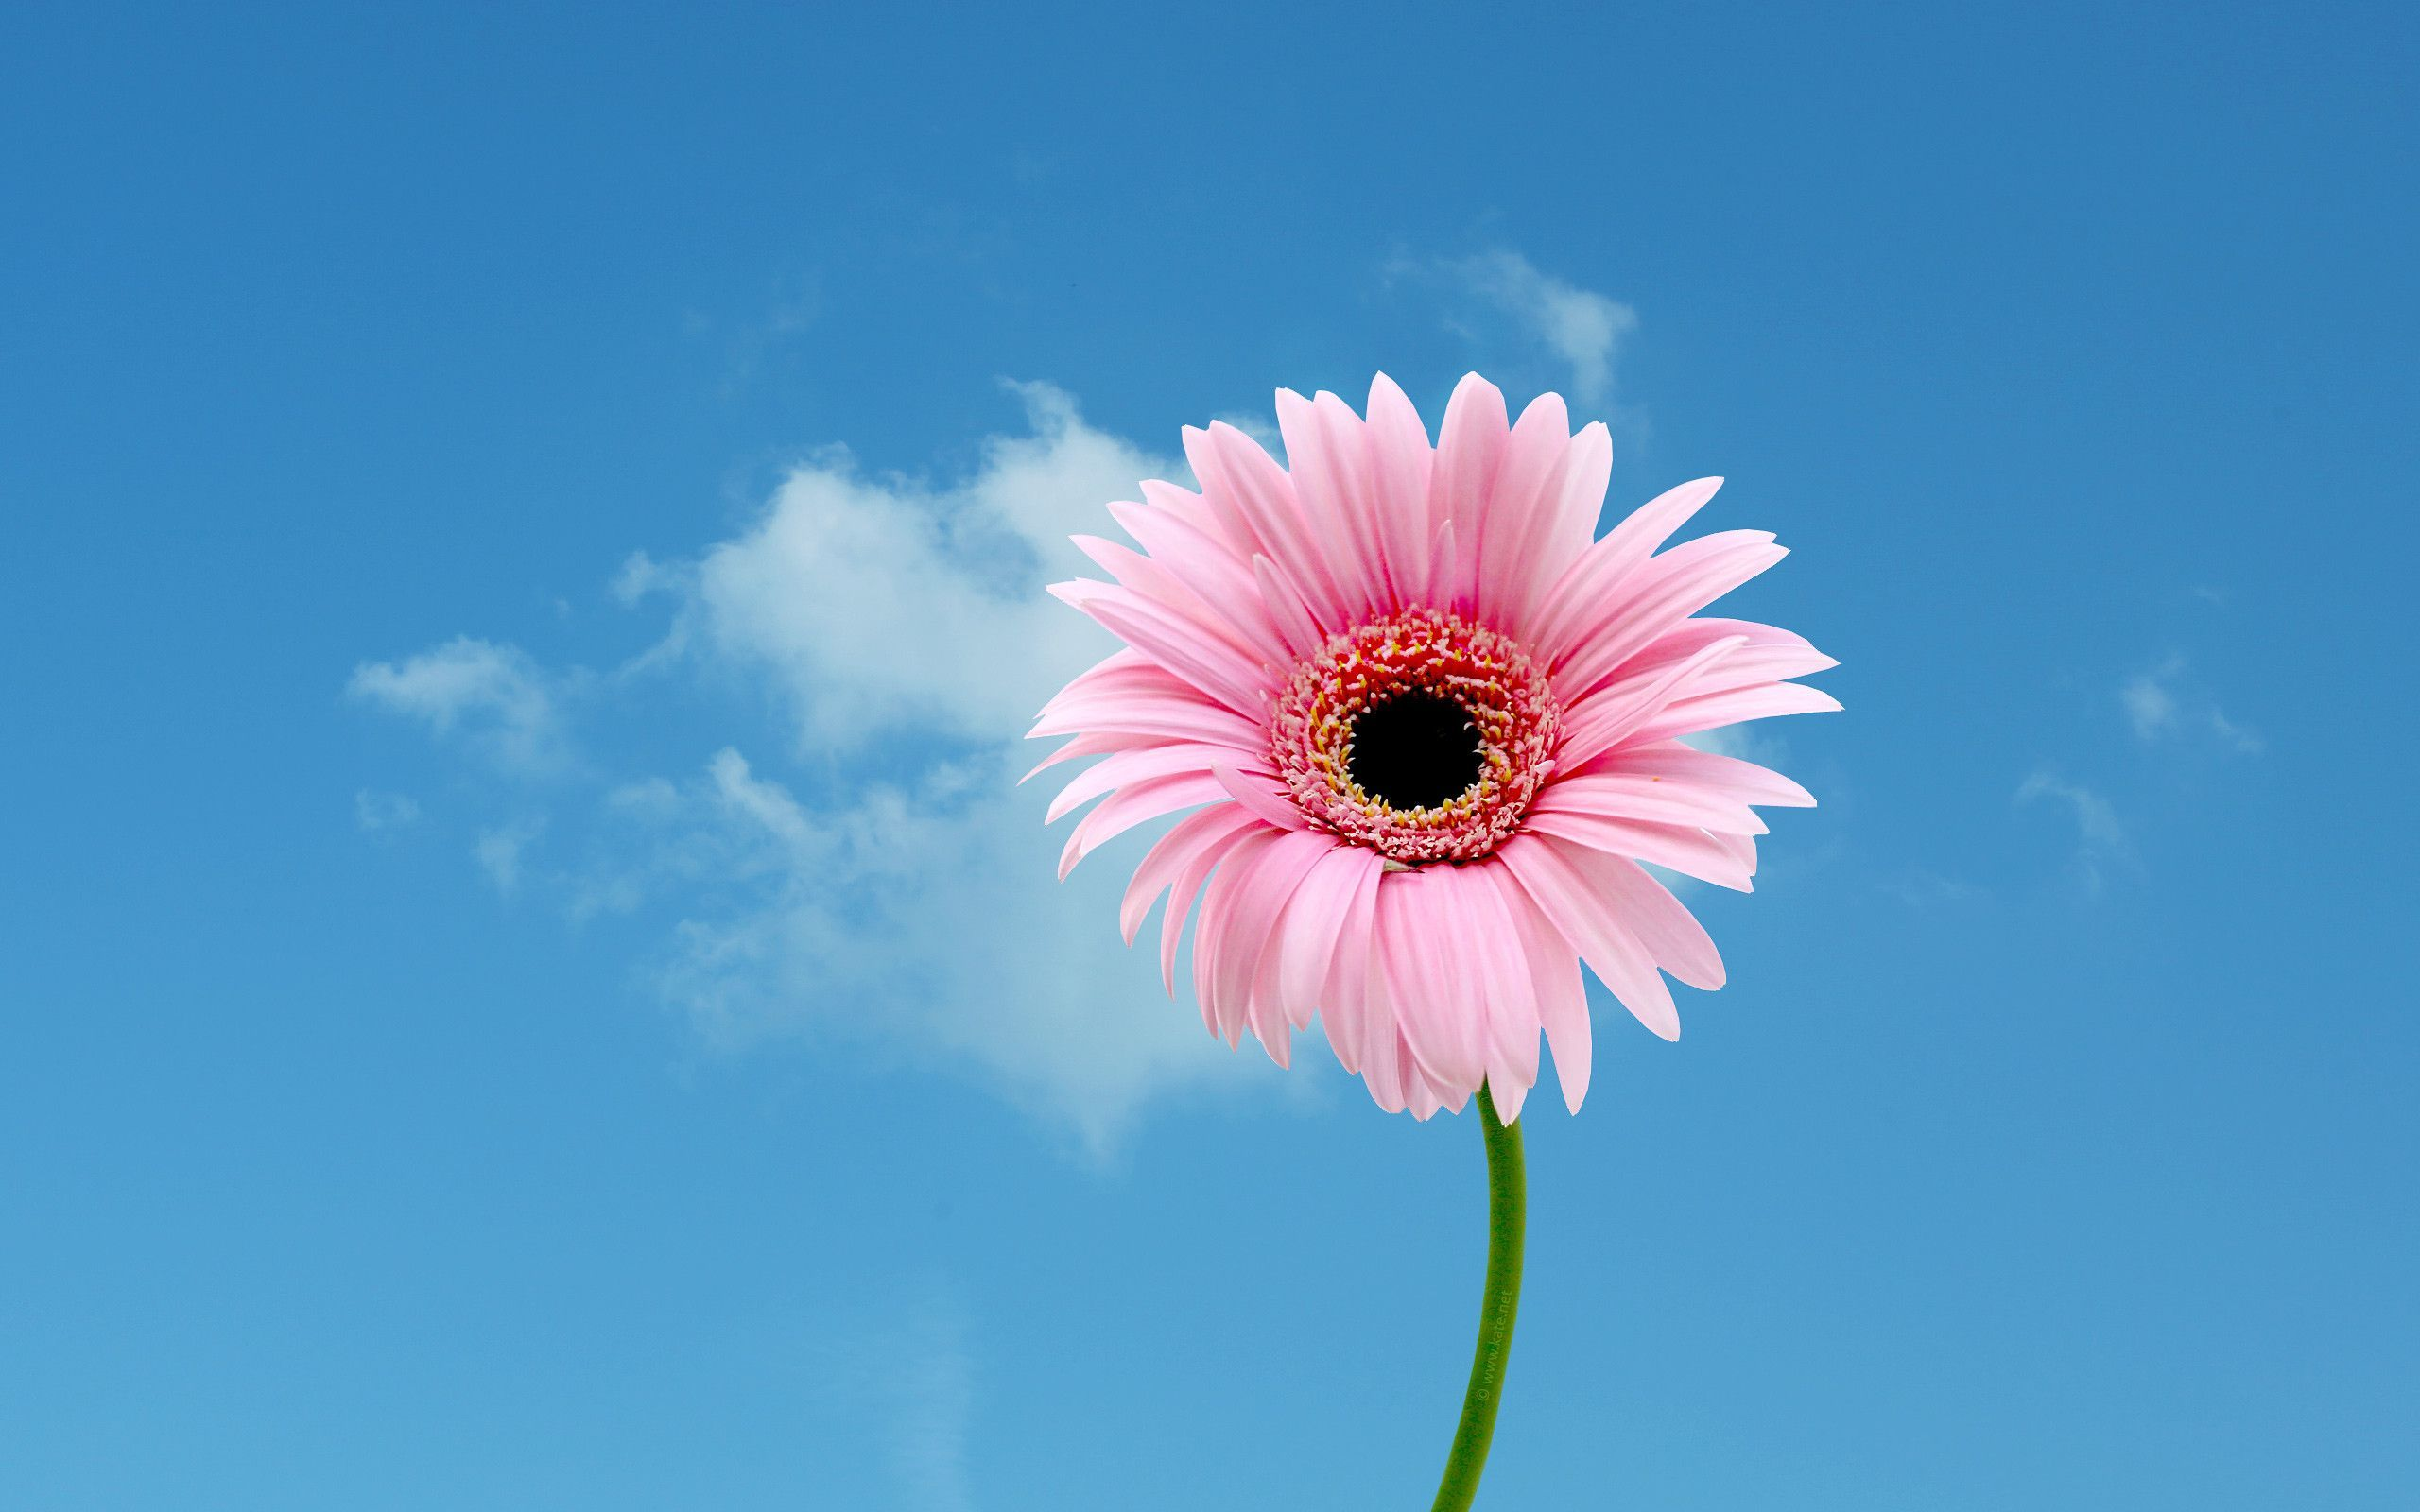 Flower Wallpapers, Flower Backgrounds on Kate. Pink